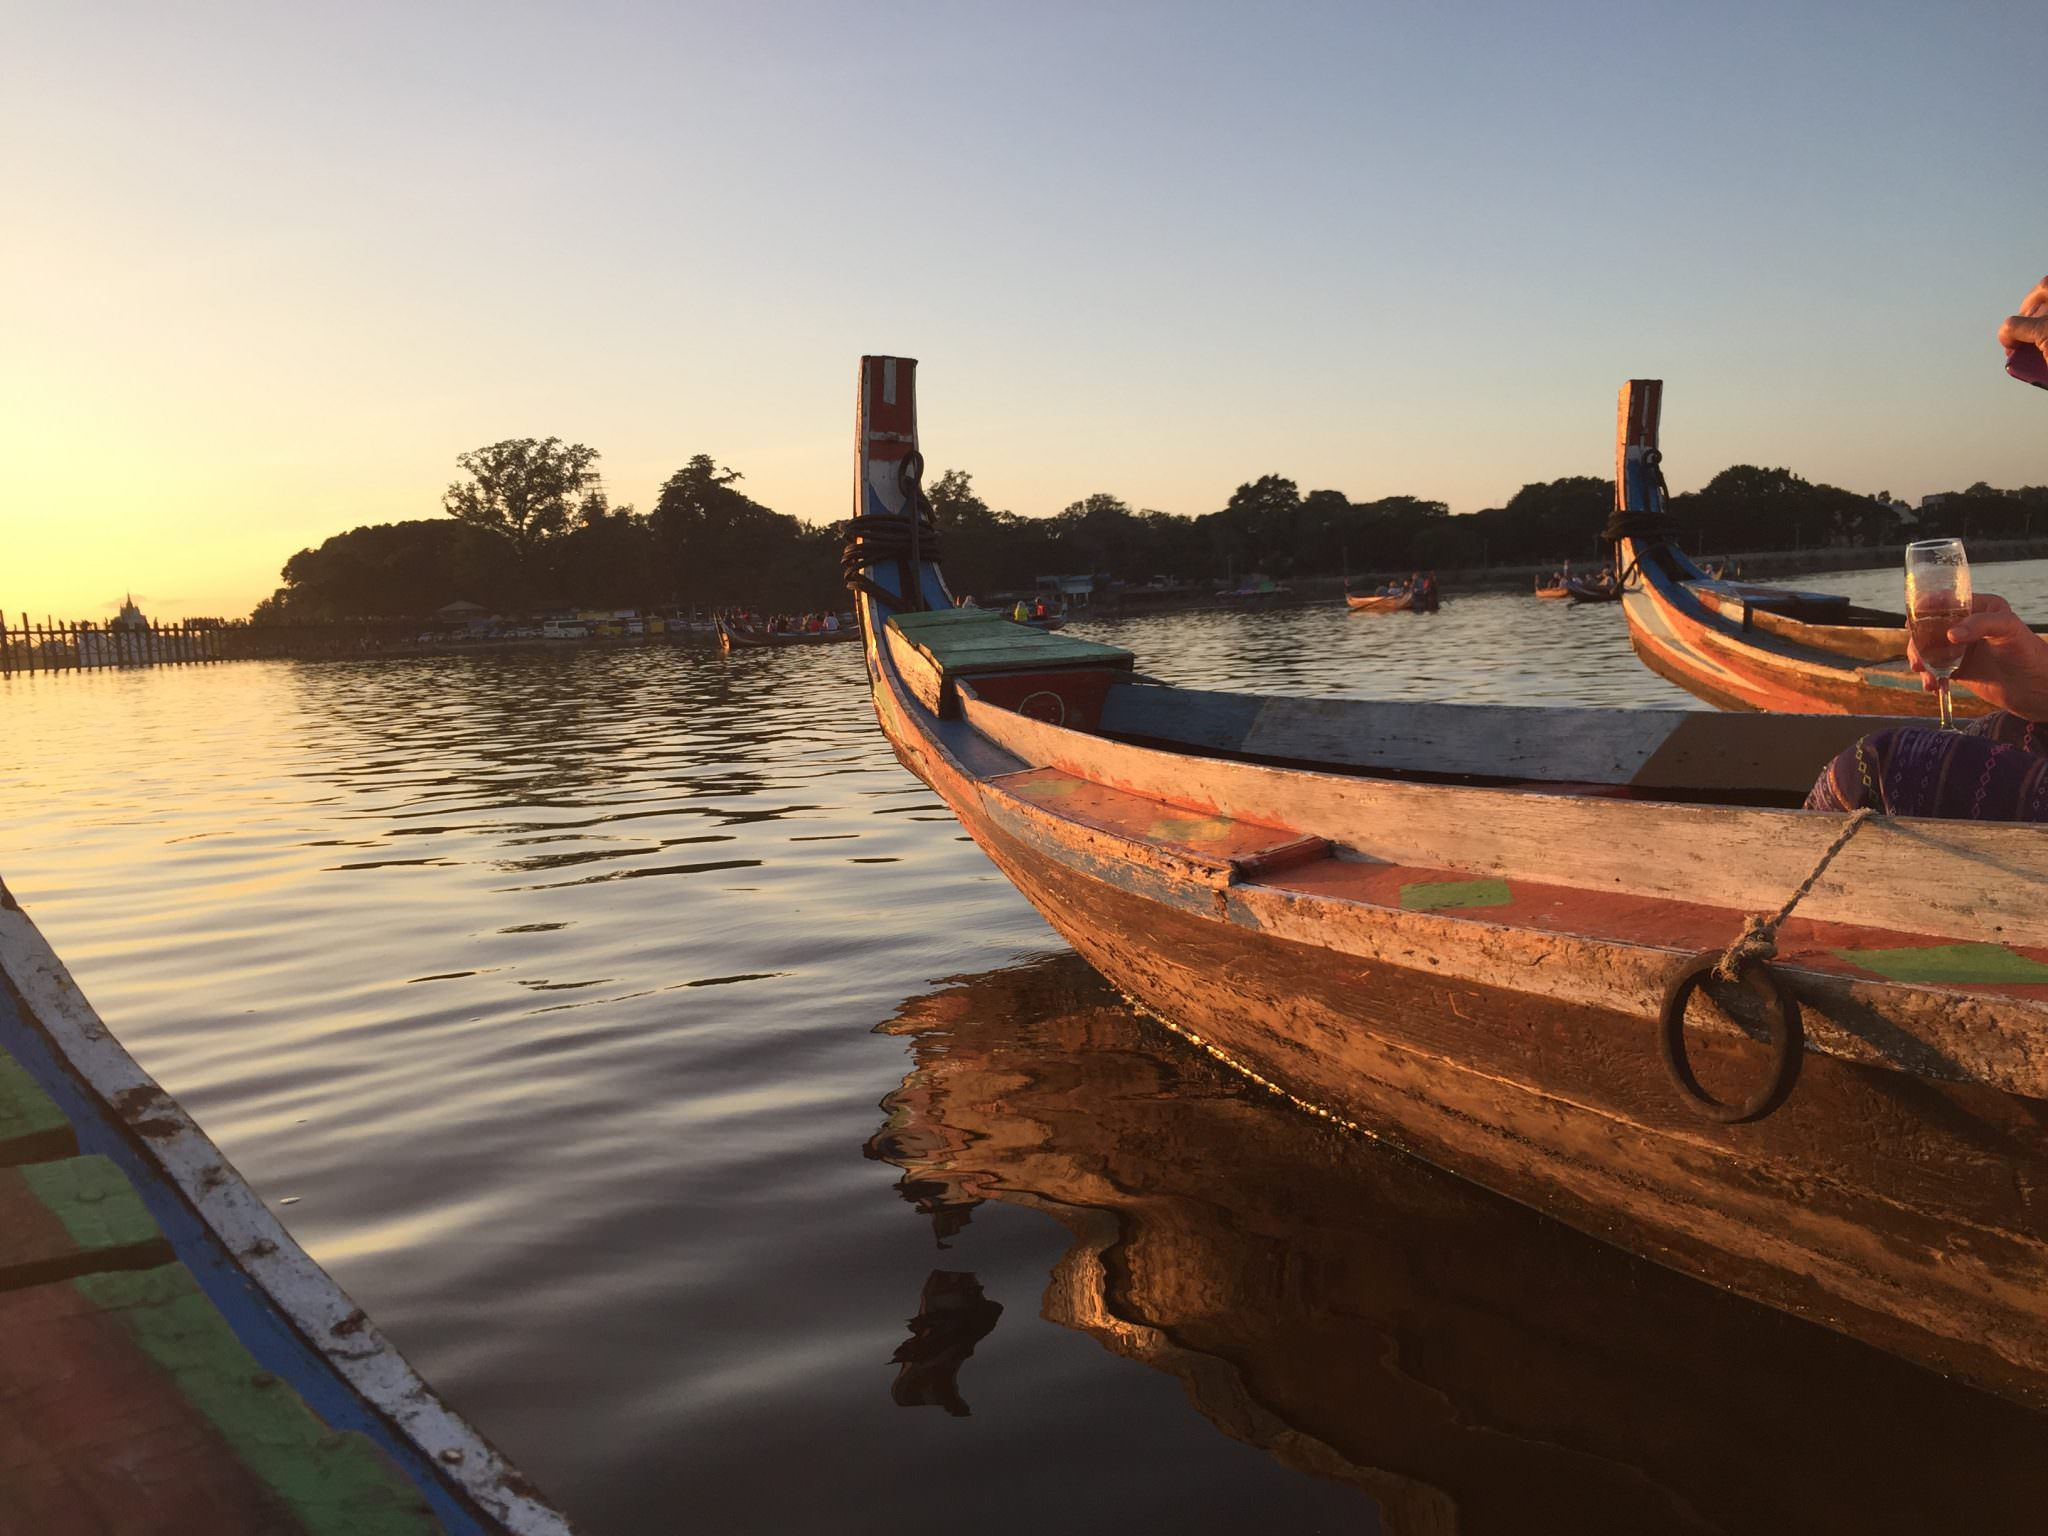 Gondolas at the ready. Countdown to the sunset in 5...4...3...2... © 2015 Gail Jessen